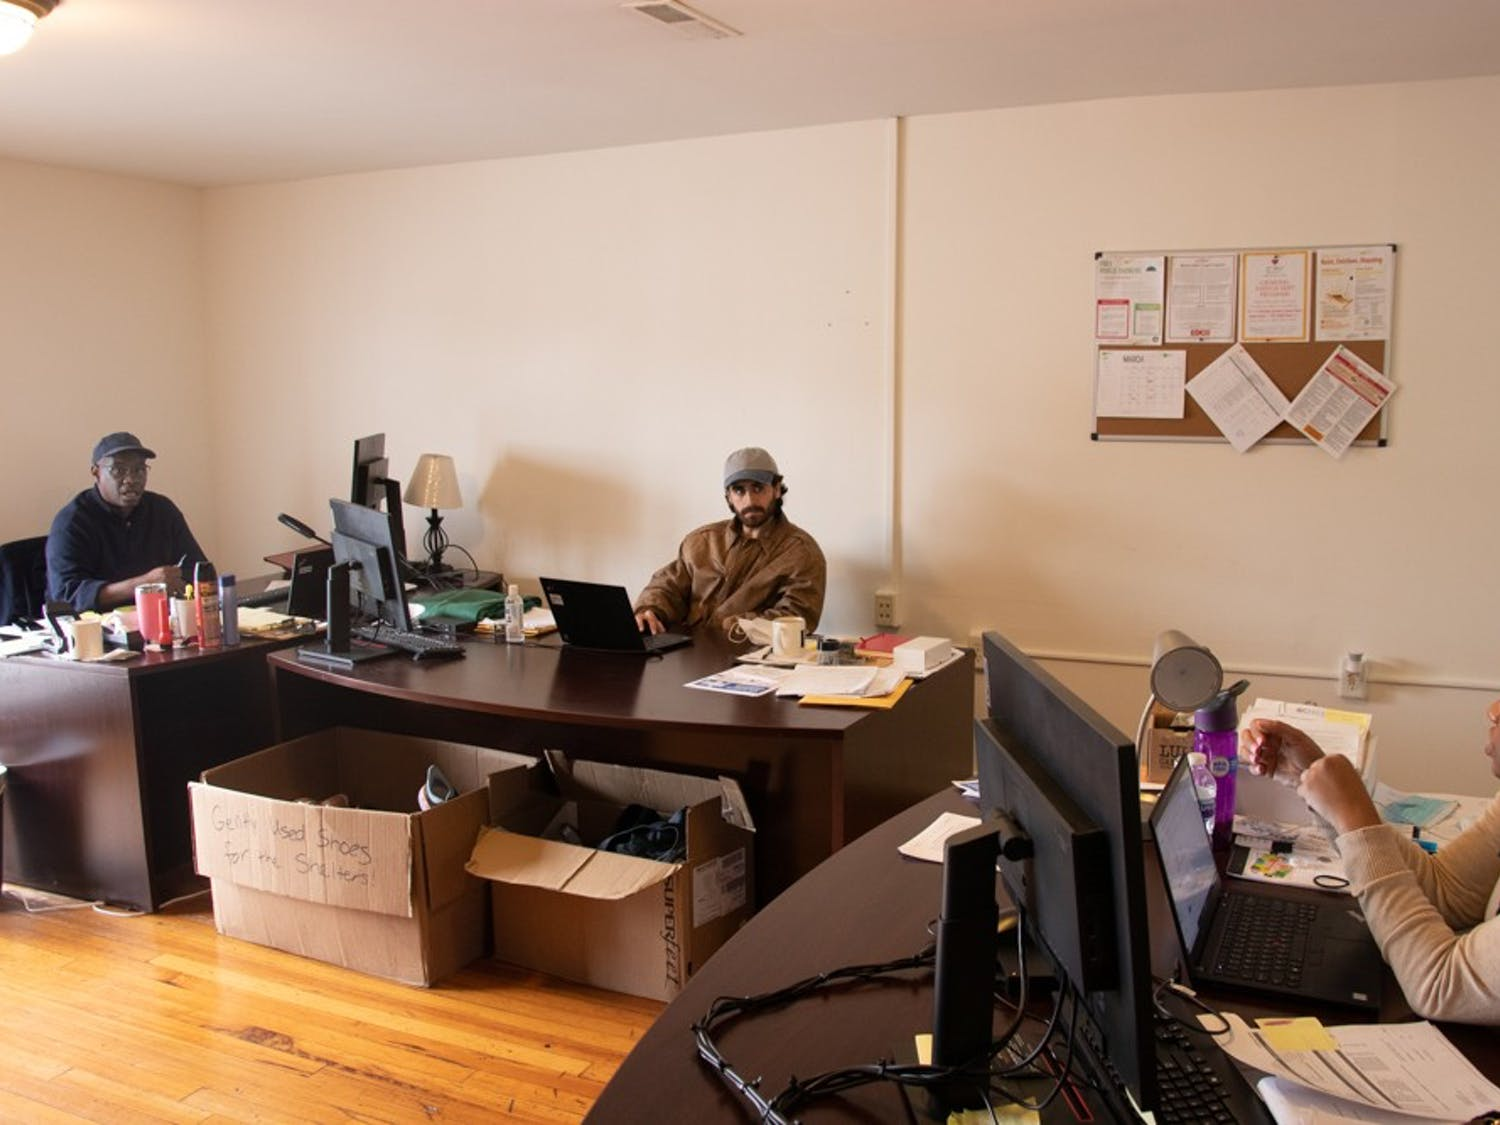 (From left to right) Don Hardin, Brandon Morande, and Tiffany Hall work together in the Orange County Street Outreach team office on 128 Franklin Street. The Street Outreach, Harm Reduction and Deflection program is a new program intending to aid people in the community who are experiencing homelessness.